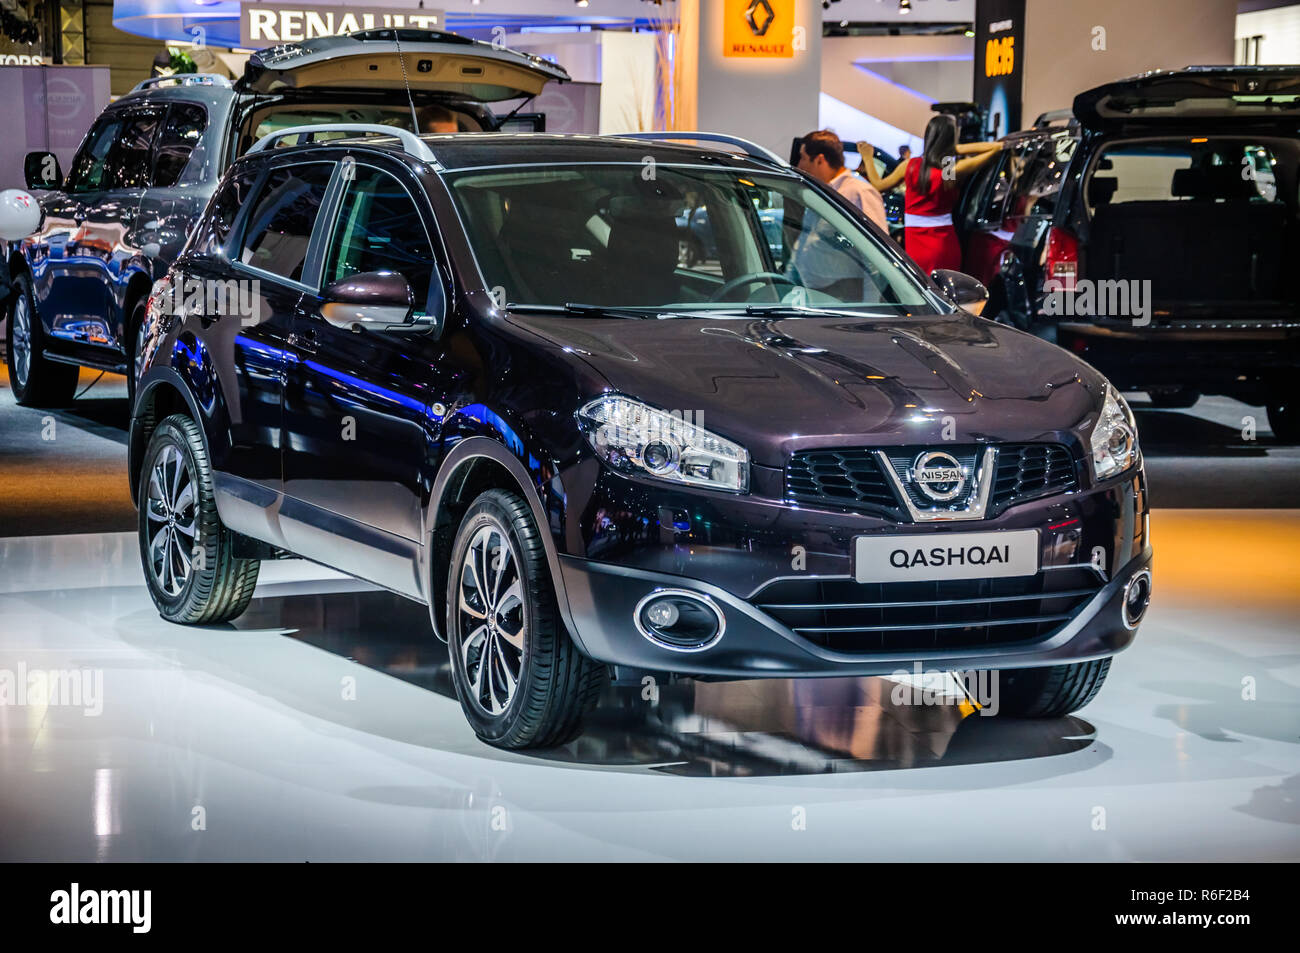 MOSCOW, RUSSIA - AUG 2012: NISSAN QASHQAI presented as world premiere at the 16th MIAS (Moscow International Automobile Salon) on August 30, 2012 in M - Stock Image